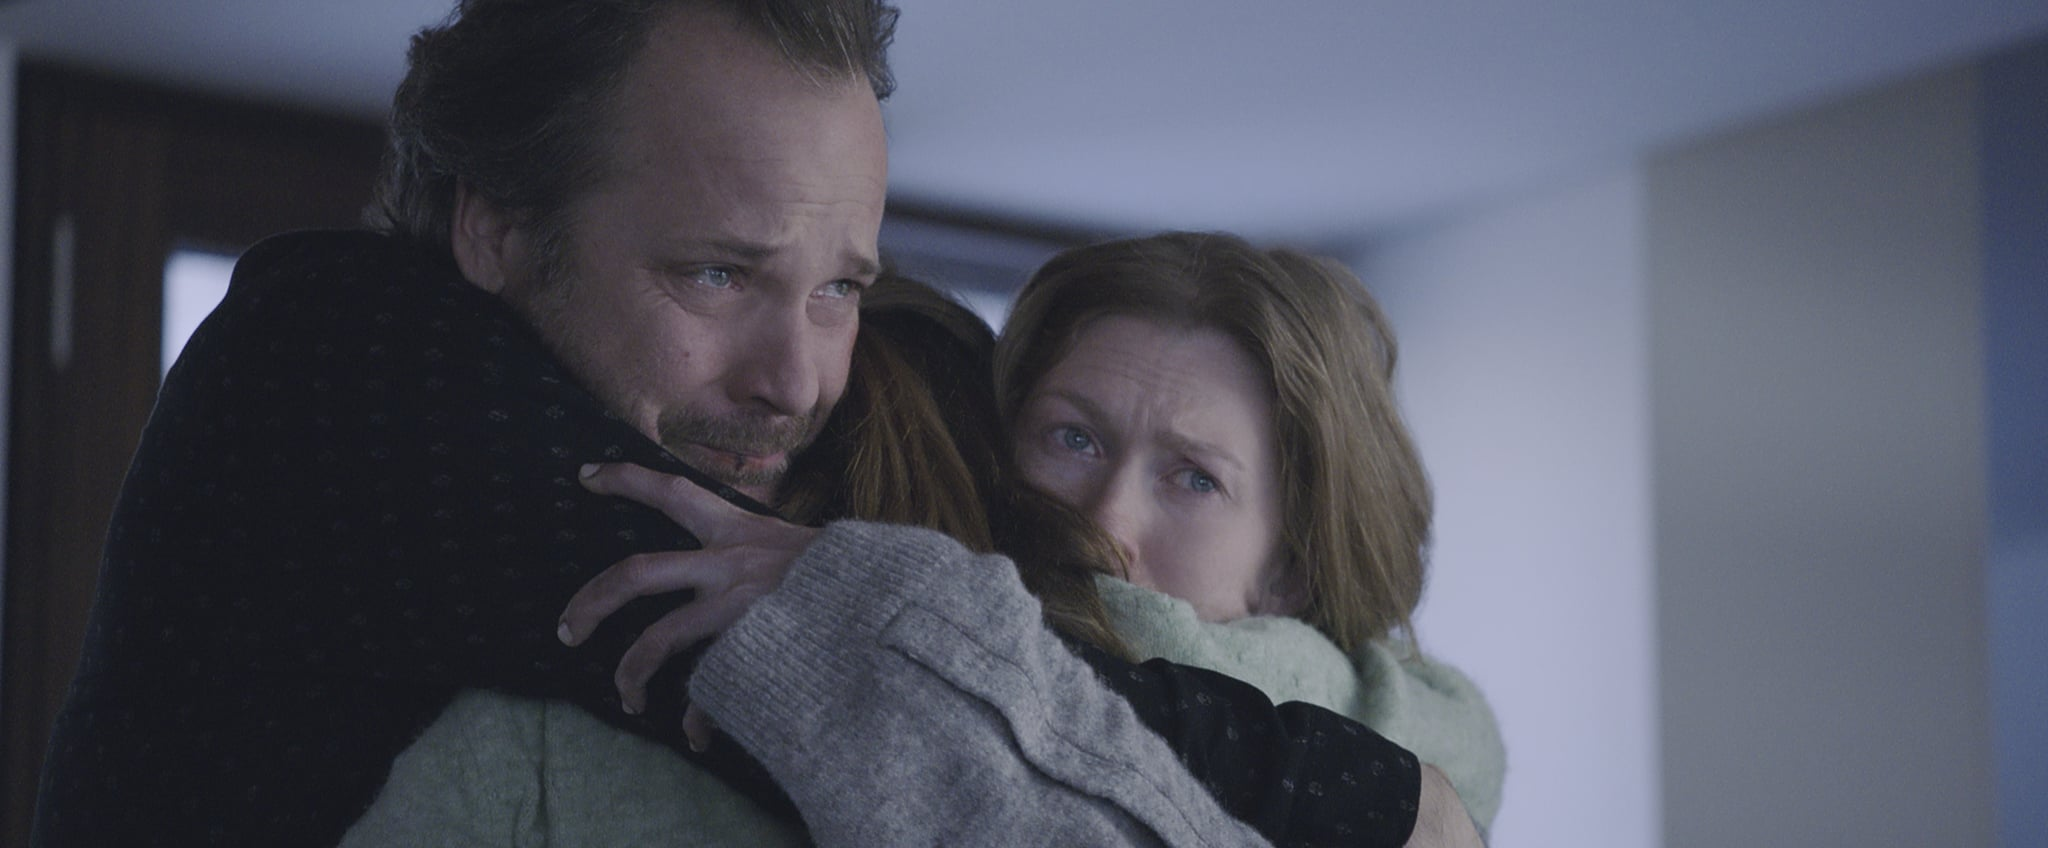 Peter Sarsgaard as Jay, Joey King as Kayla, and Mireille Enos as Rebecca in THE LIE